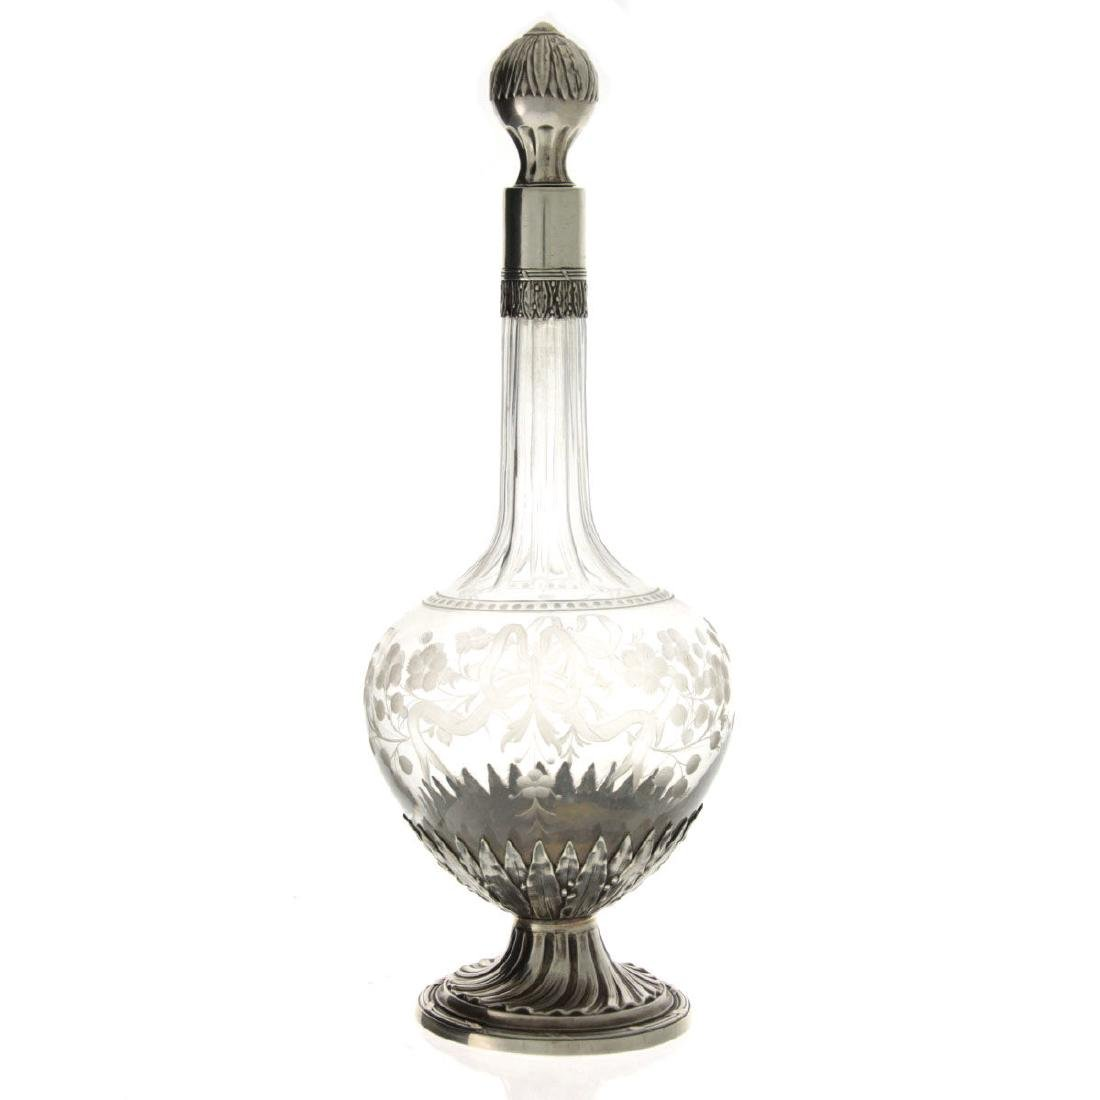 French Sterling Silver and Crystal Scent Bottle, Henri